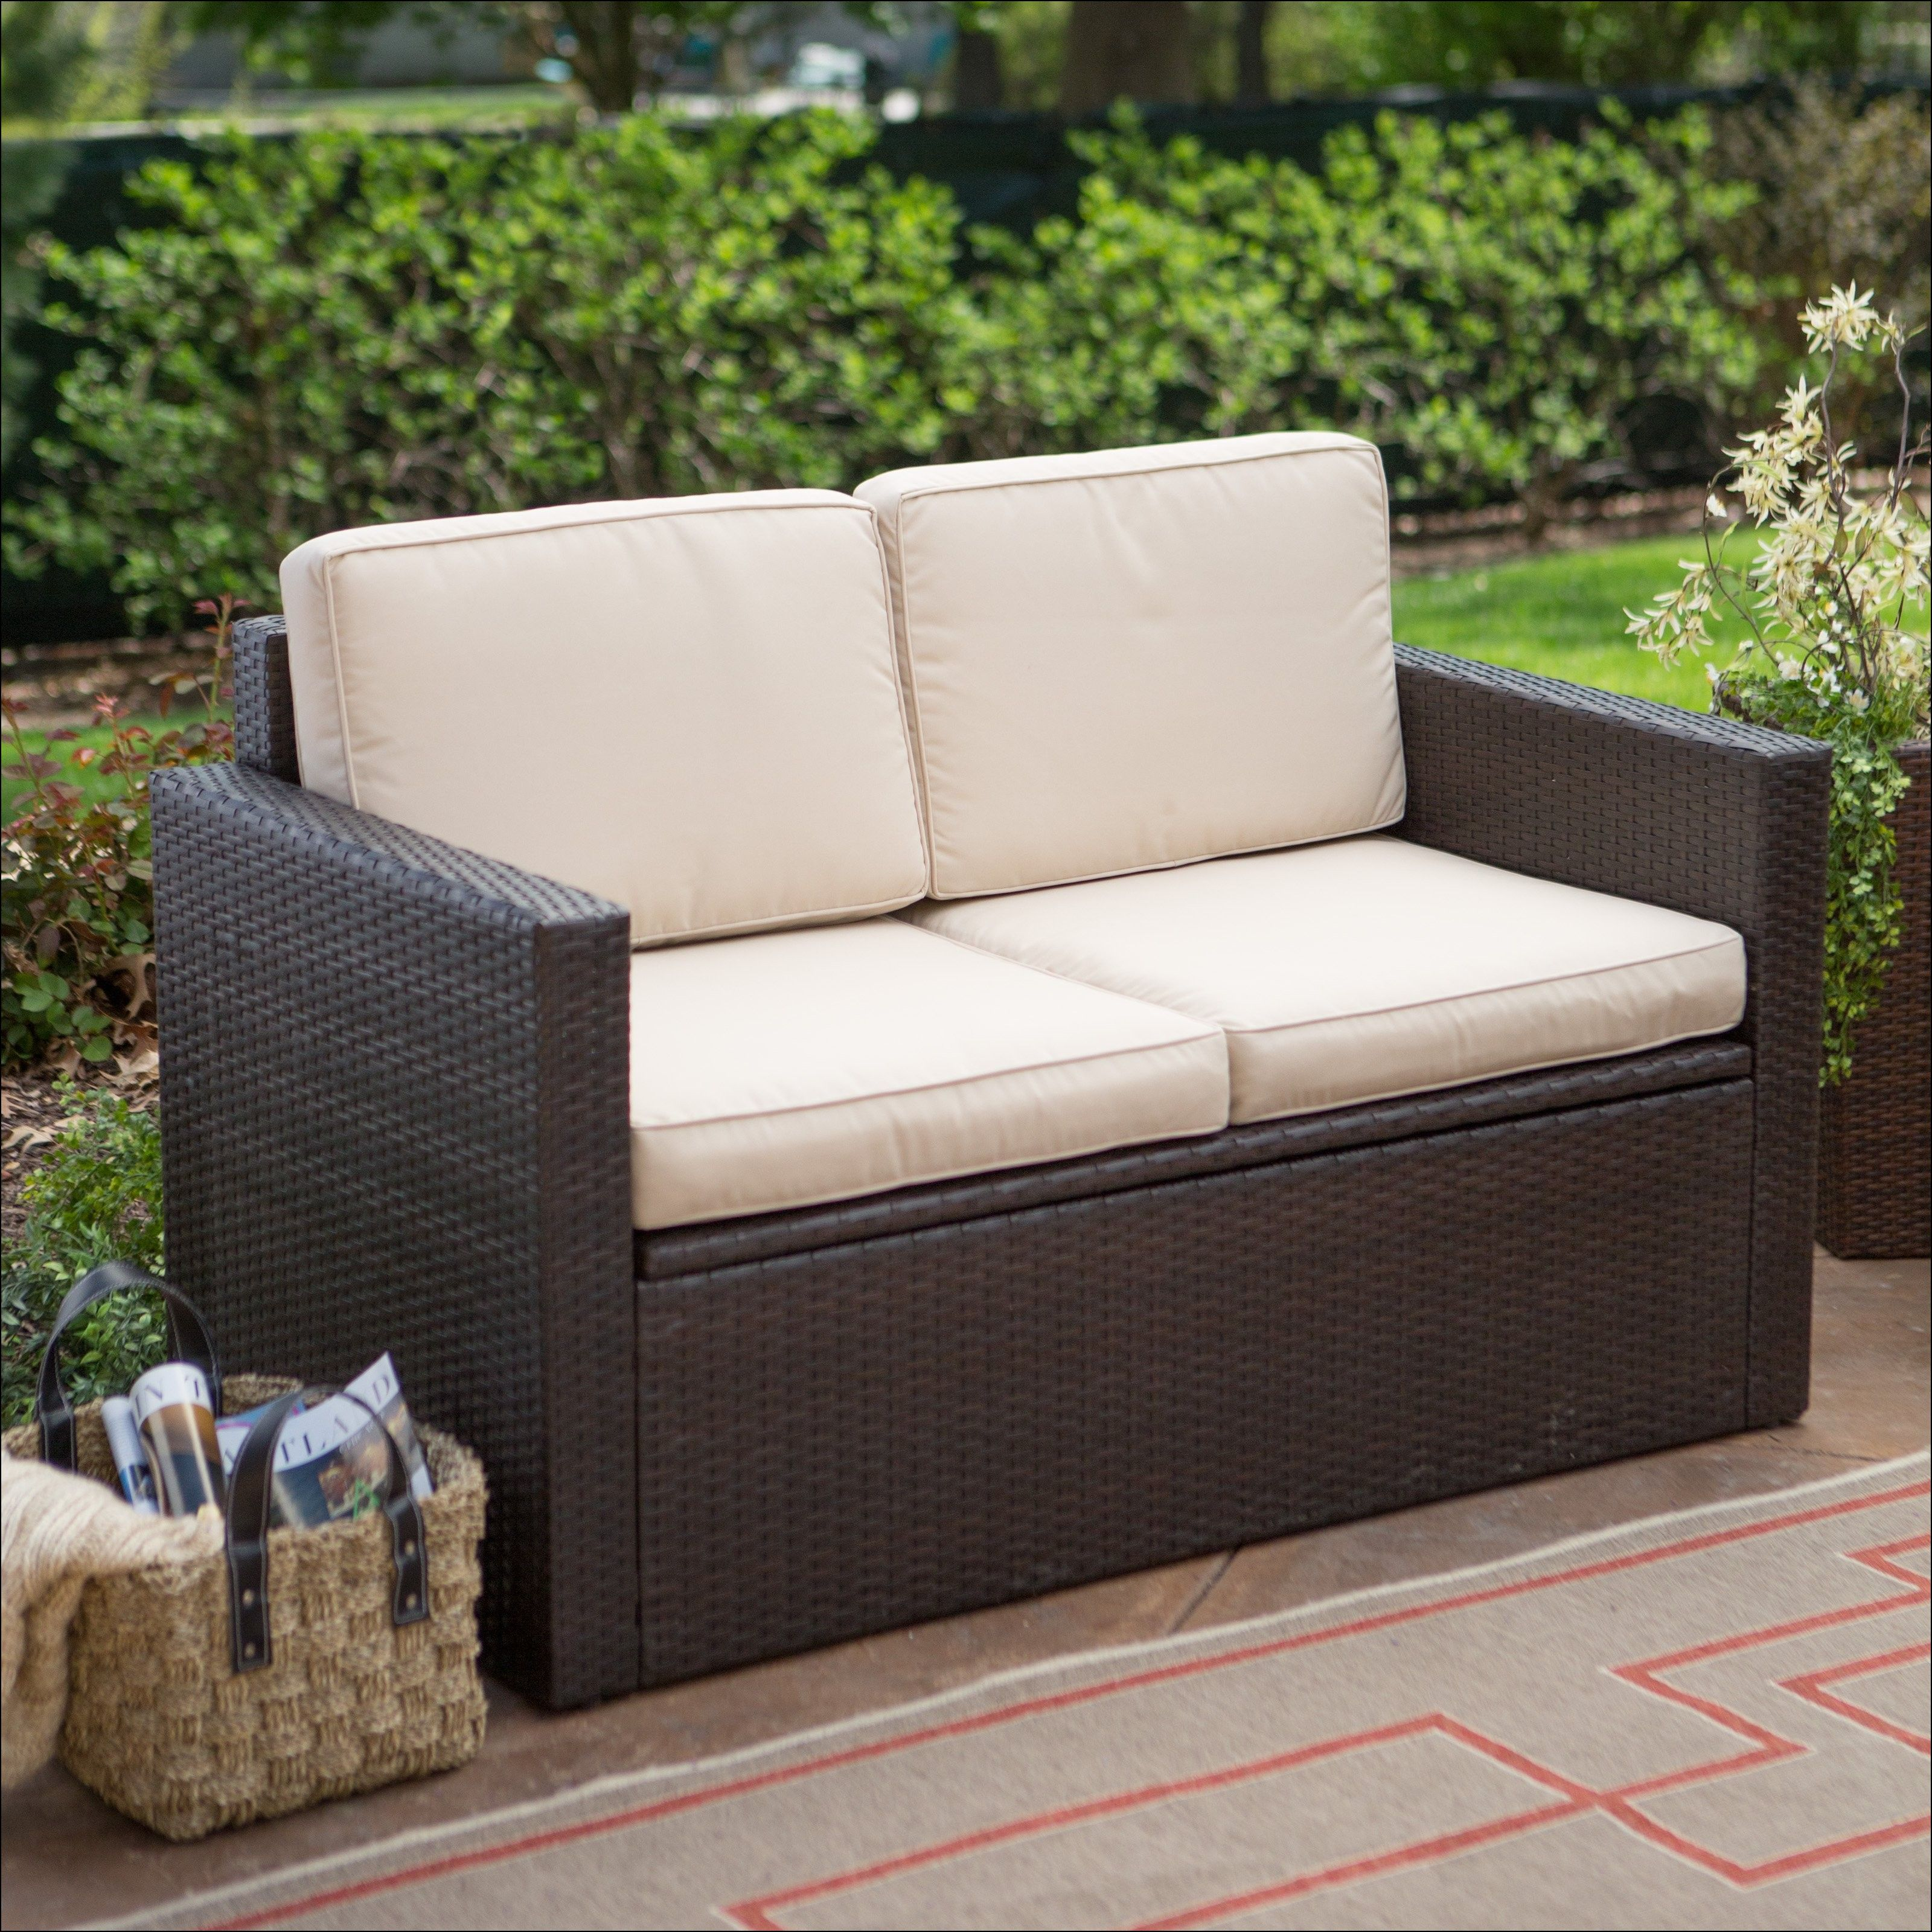 Beau Outdoor Couch With Storage